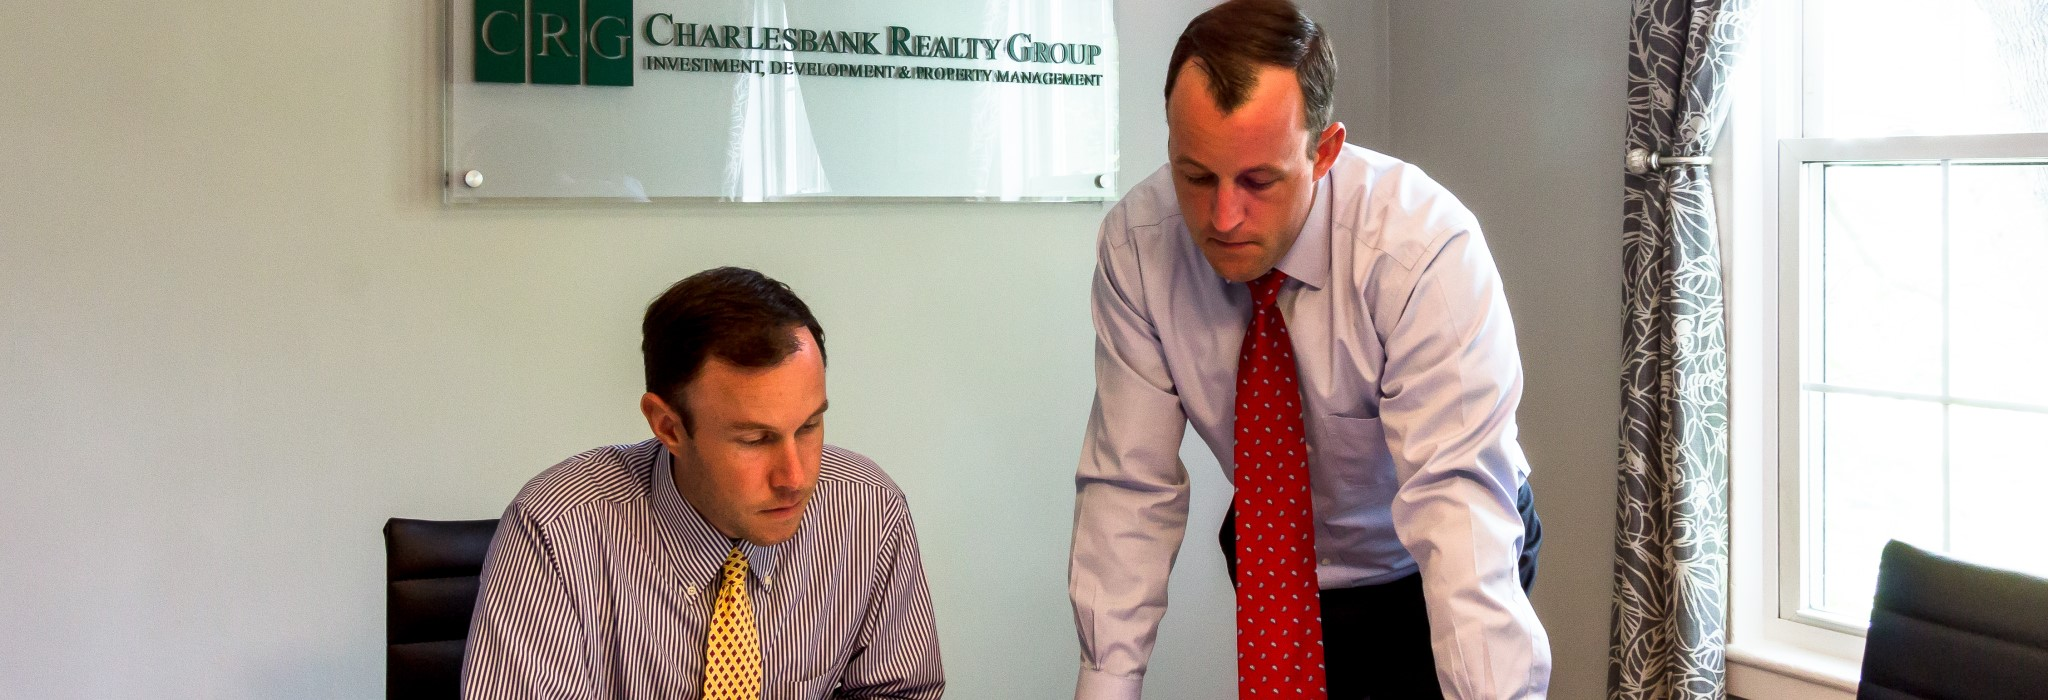 Charlesbank Realty Group Offices